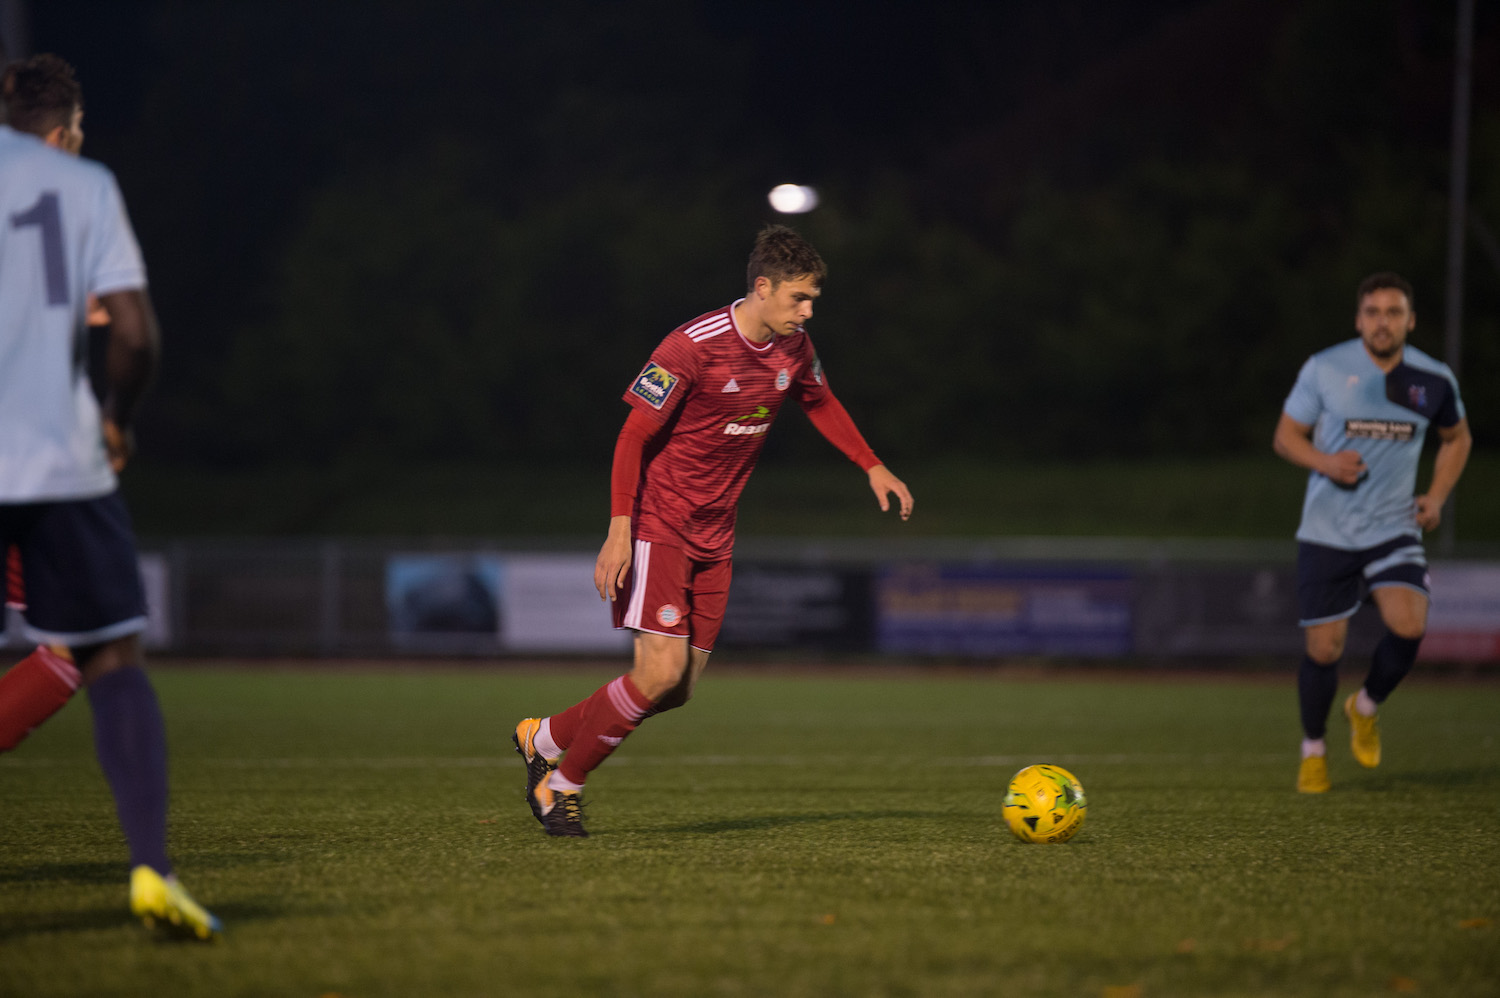 Read the full article - Gallery: Uckfield Town [H] – Cup